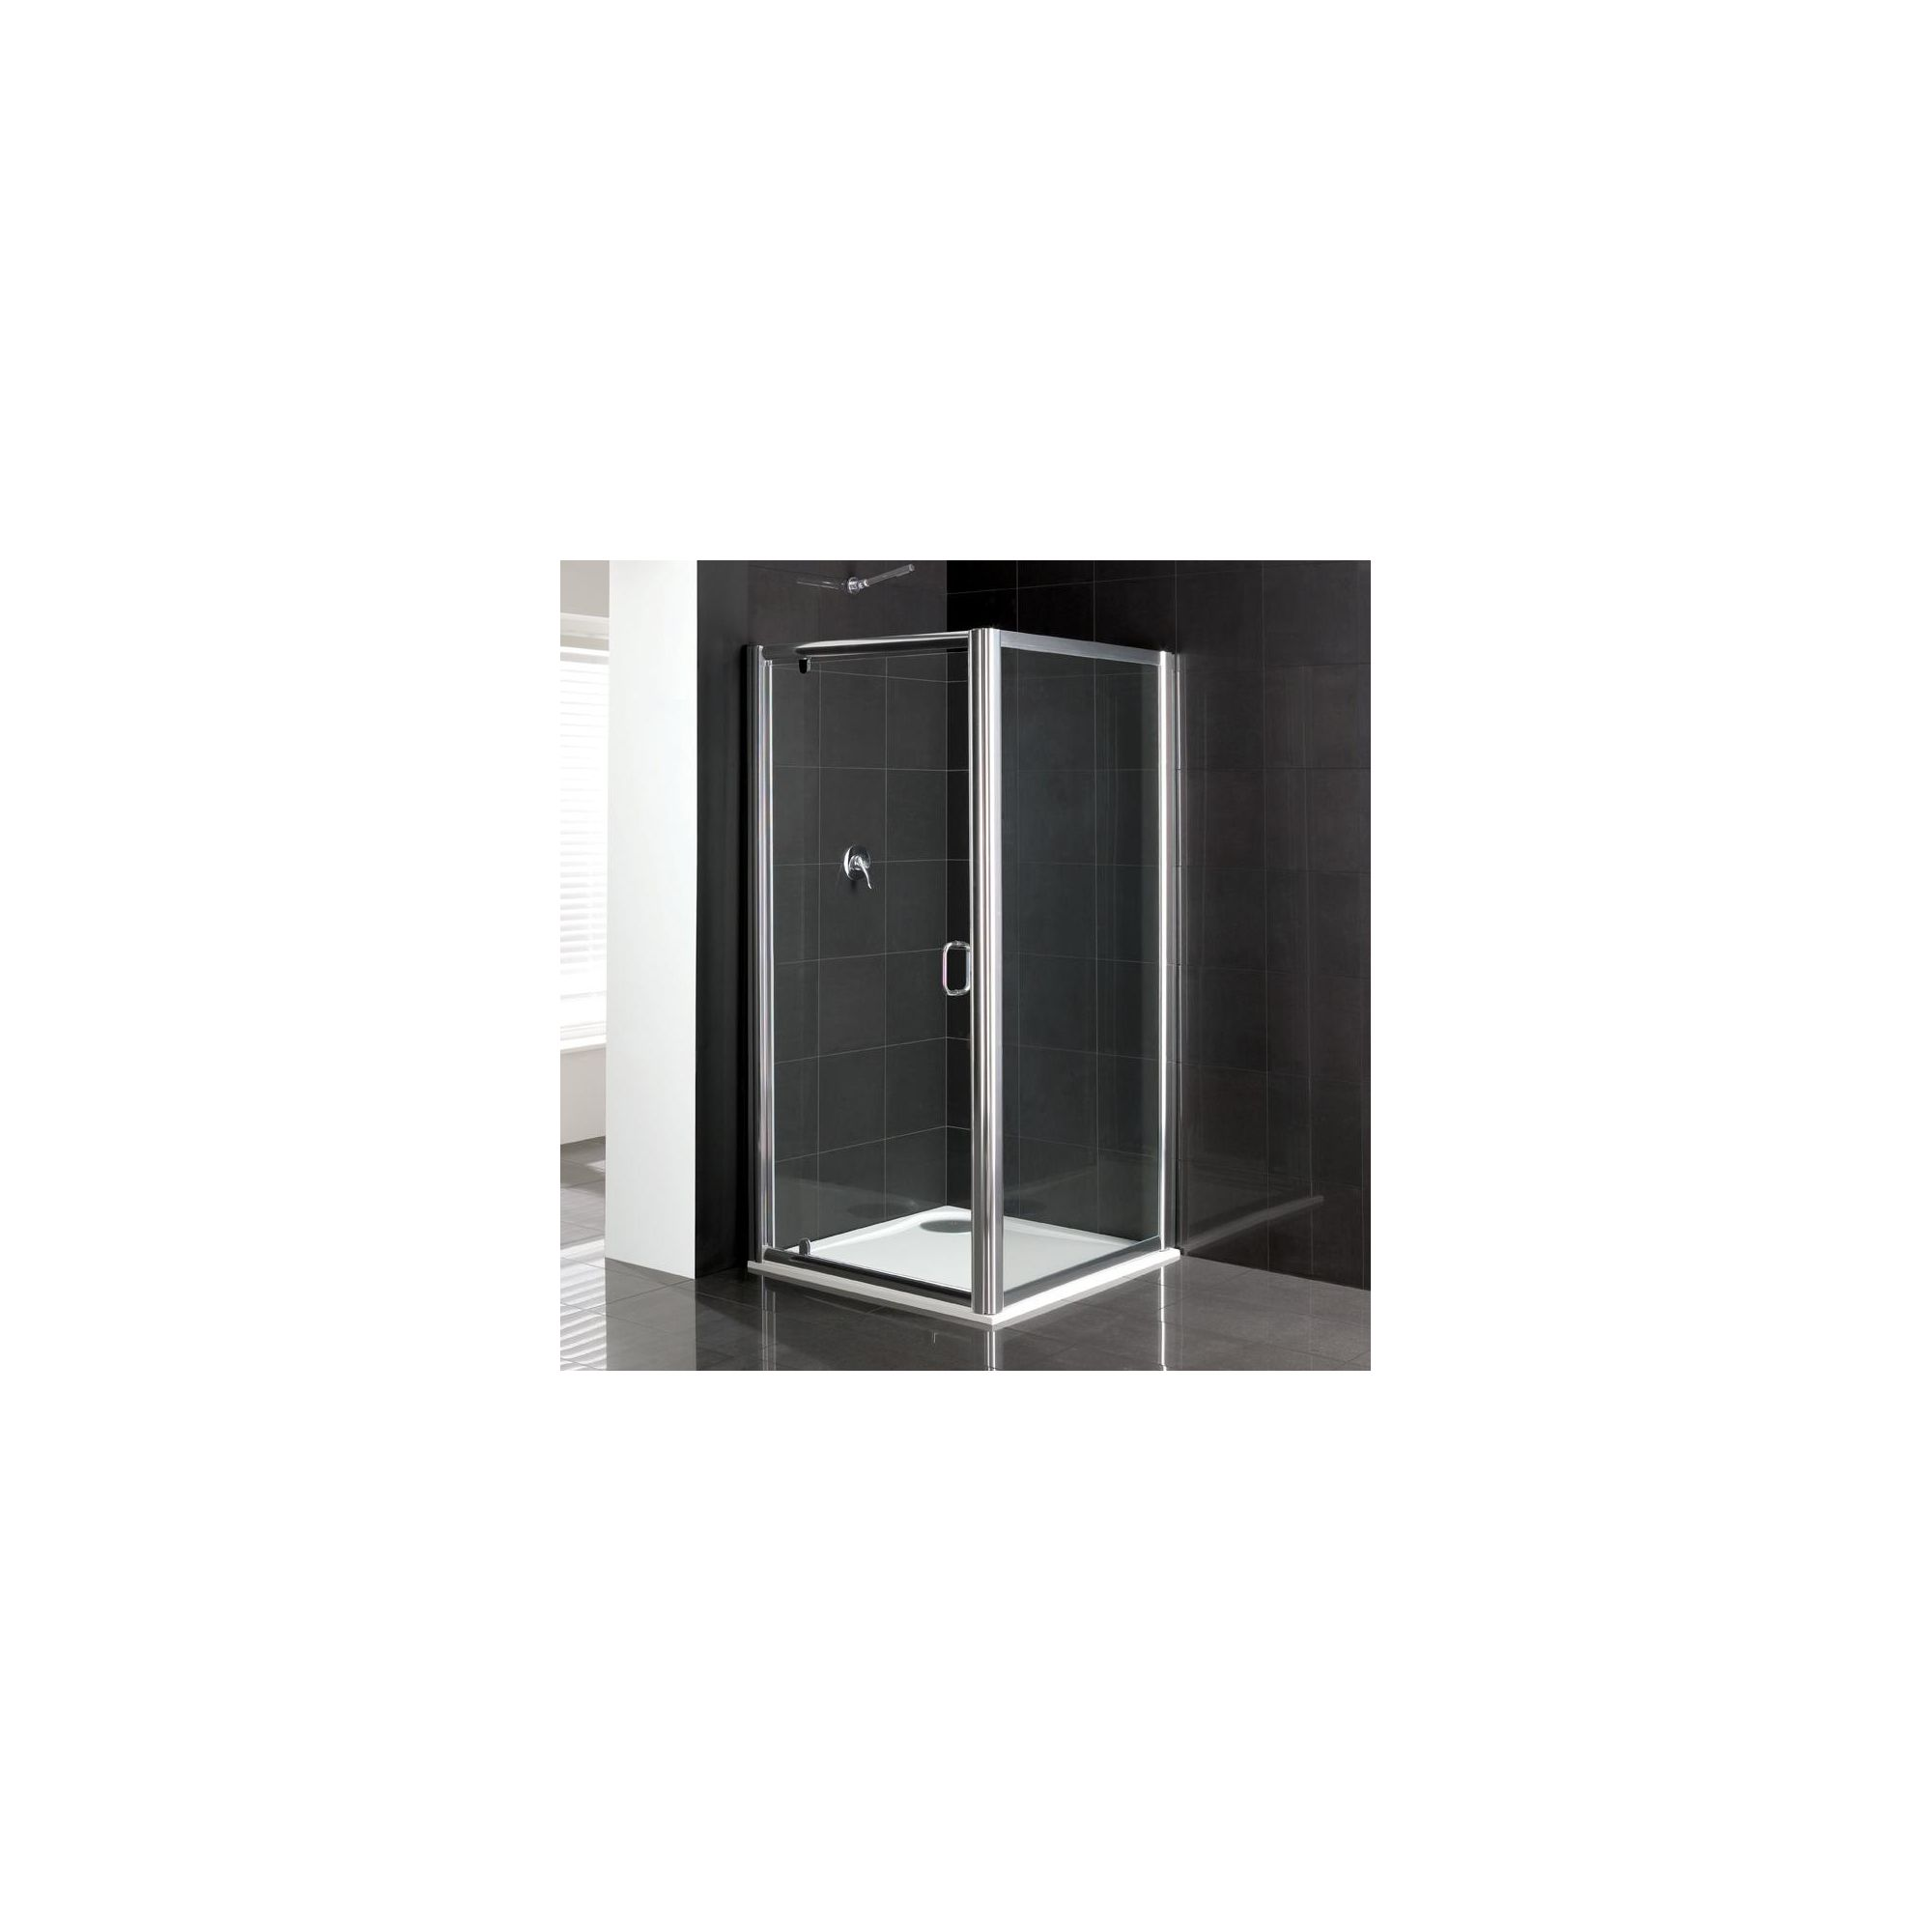 Duchy Elite Silver Pivot Door Shower Enclosure with Towel Rail, 1000mm x 700mm, Standard Tray, 6mm Glass at Tesco Direct